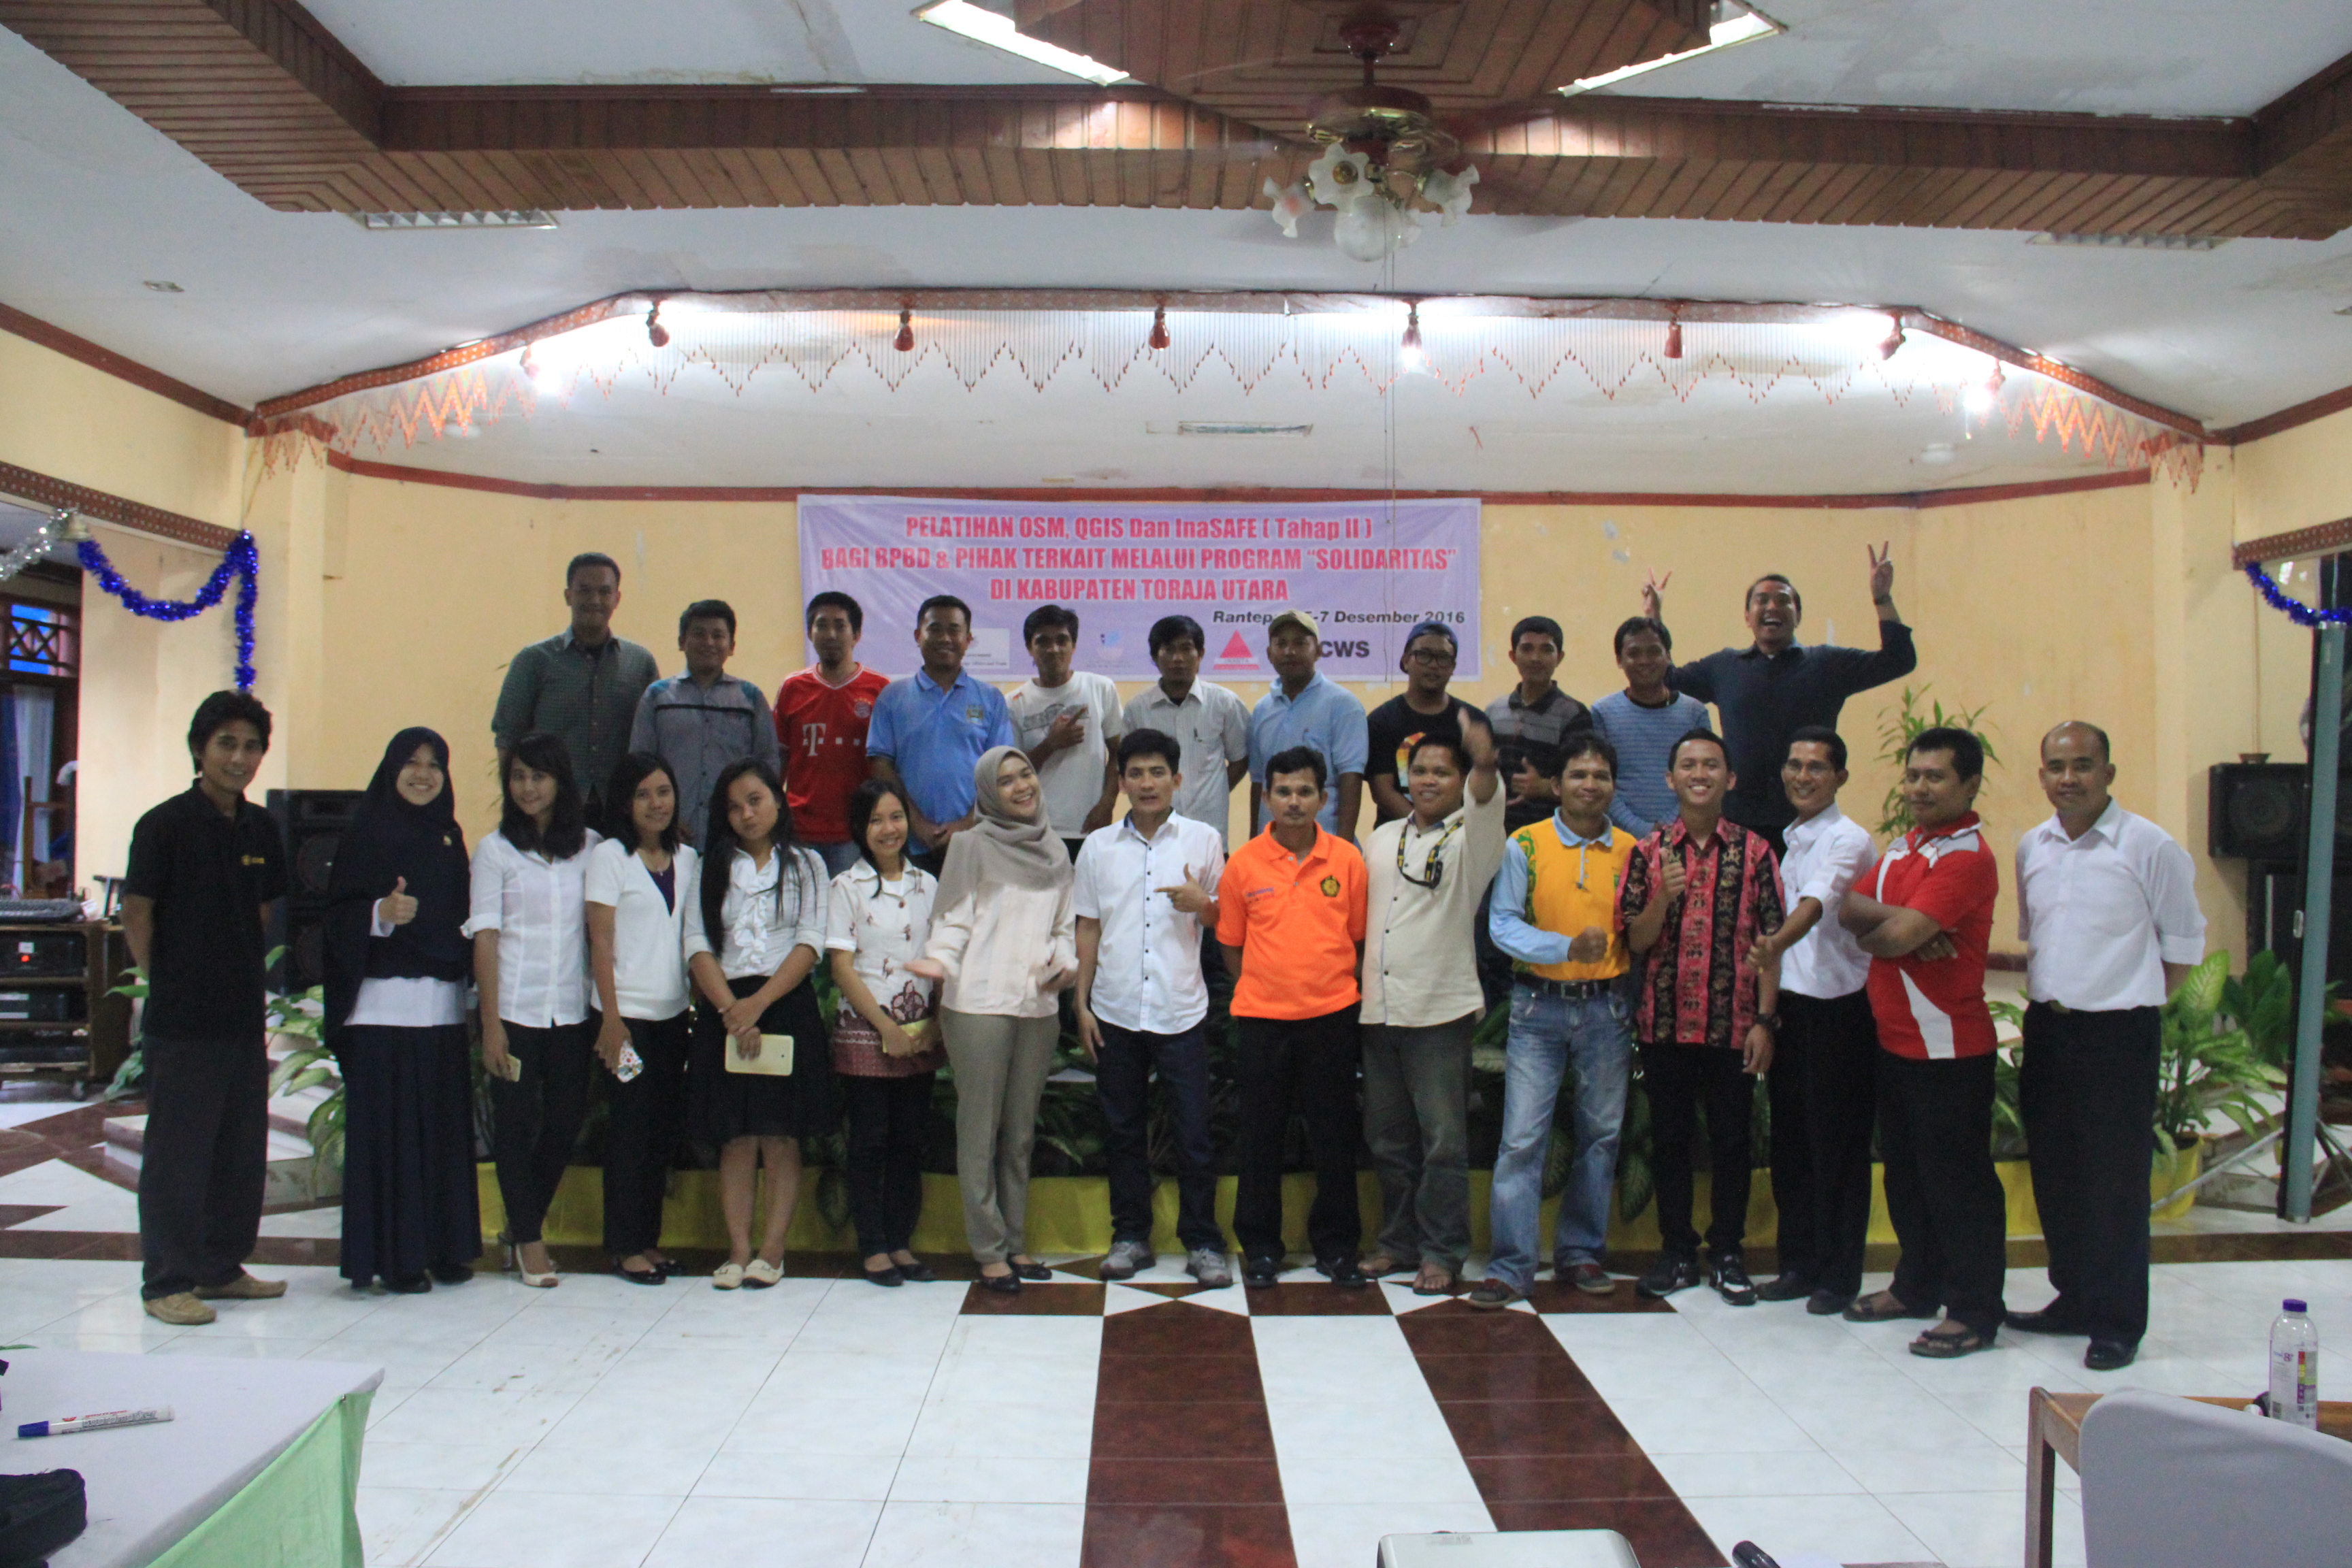 Photo session with all participants and trainers